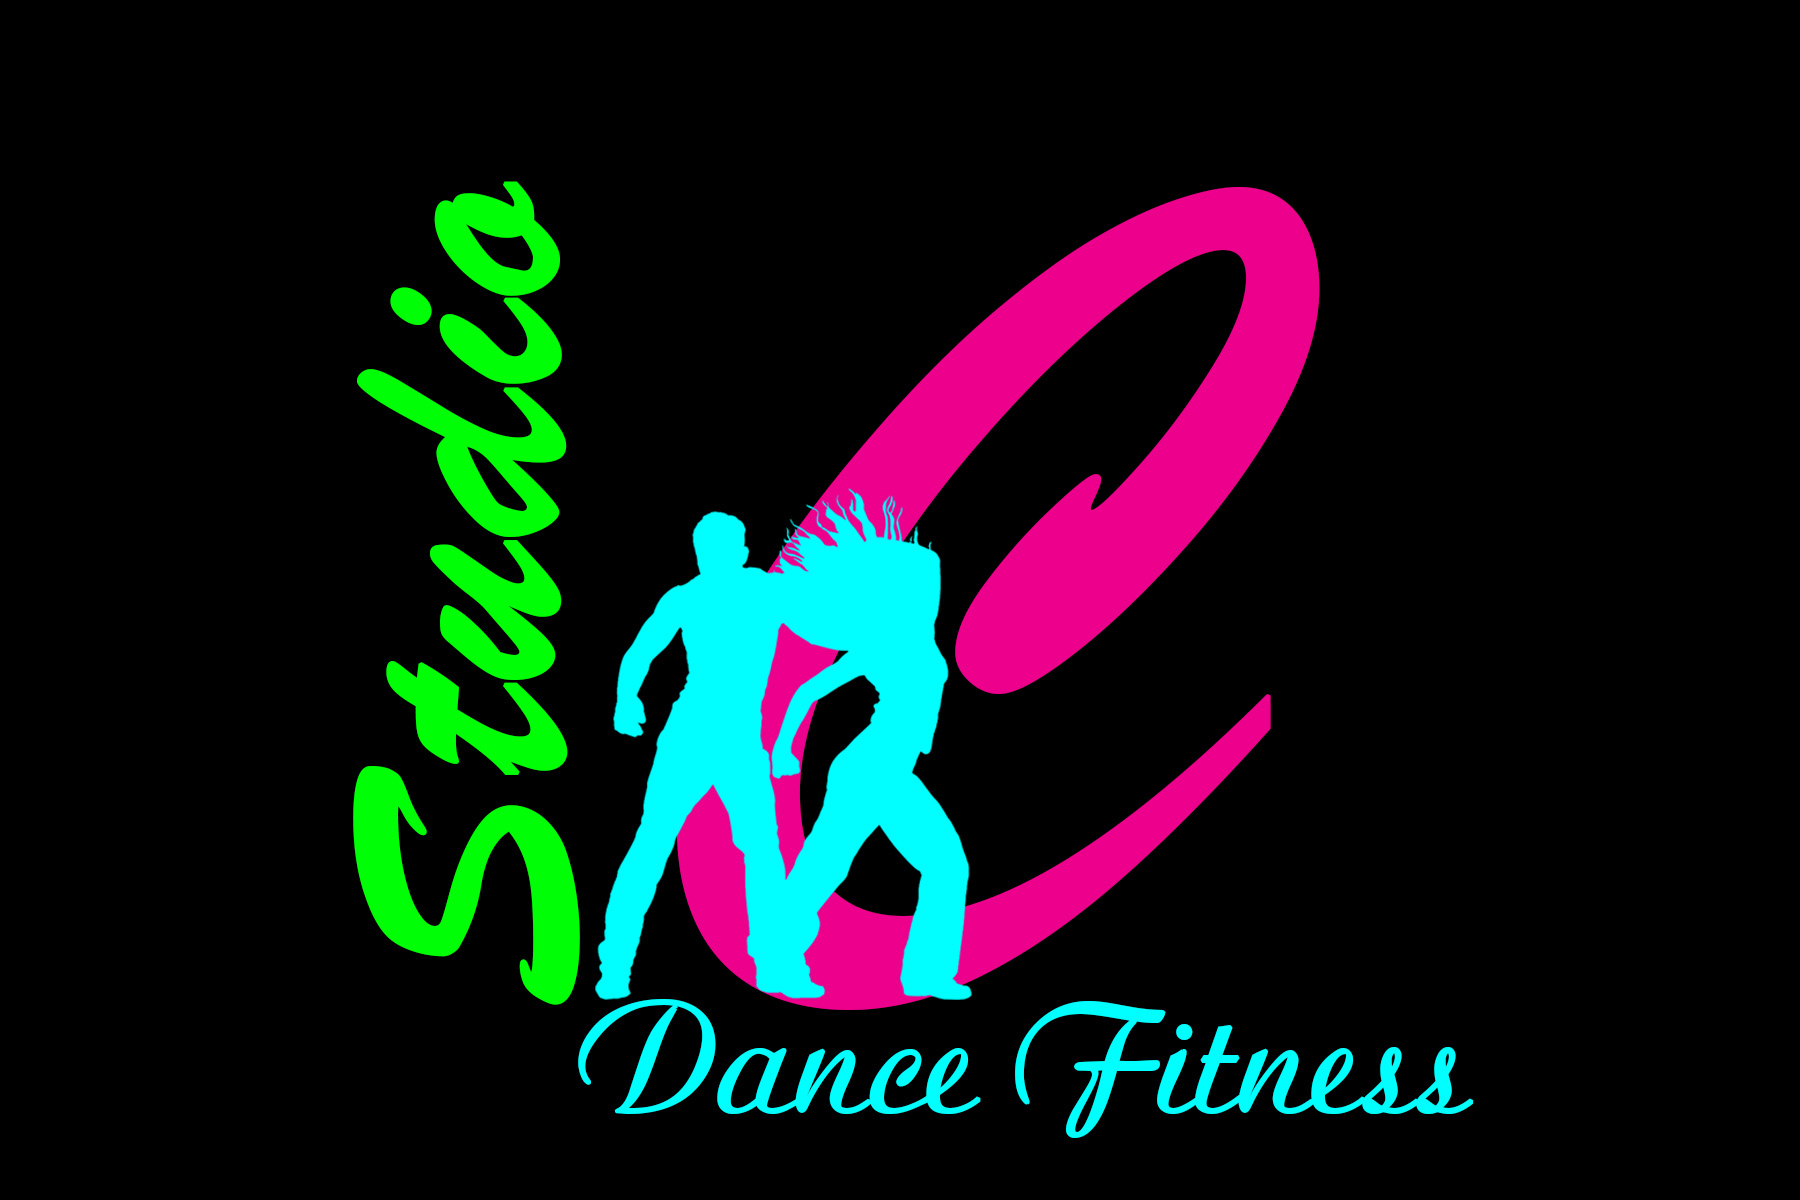 Studio C Dance Fitness